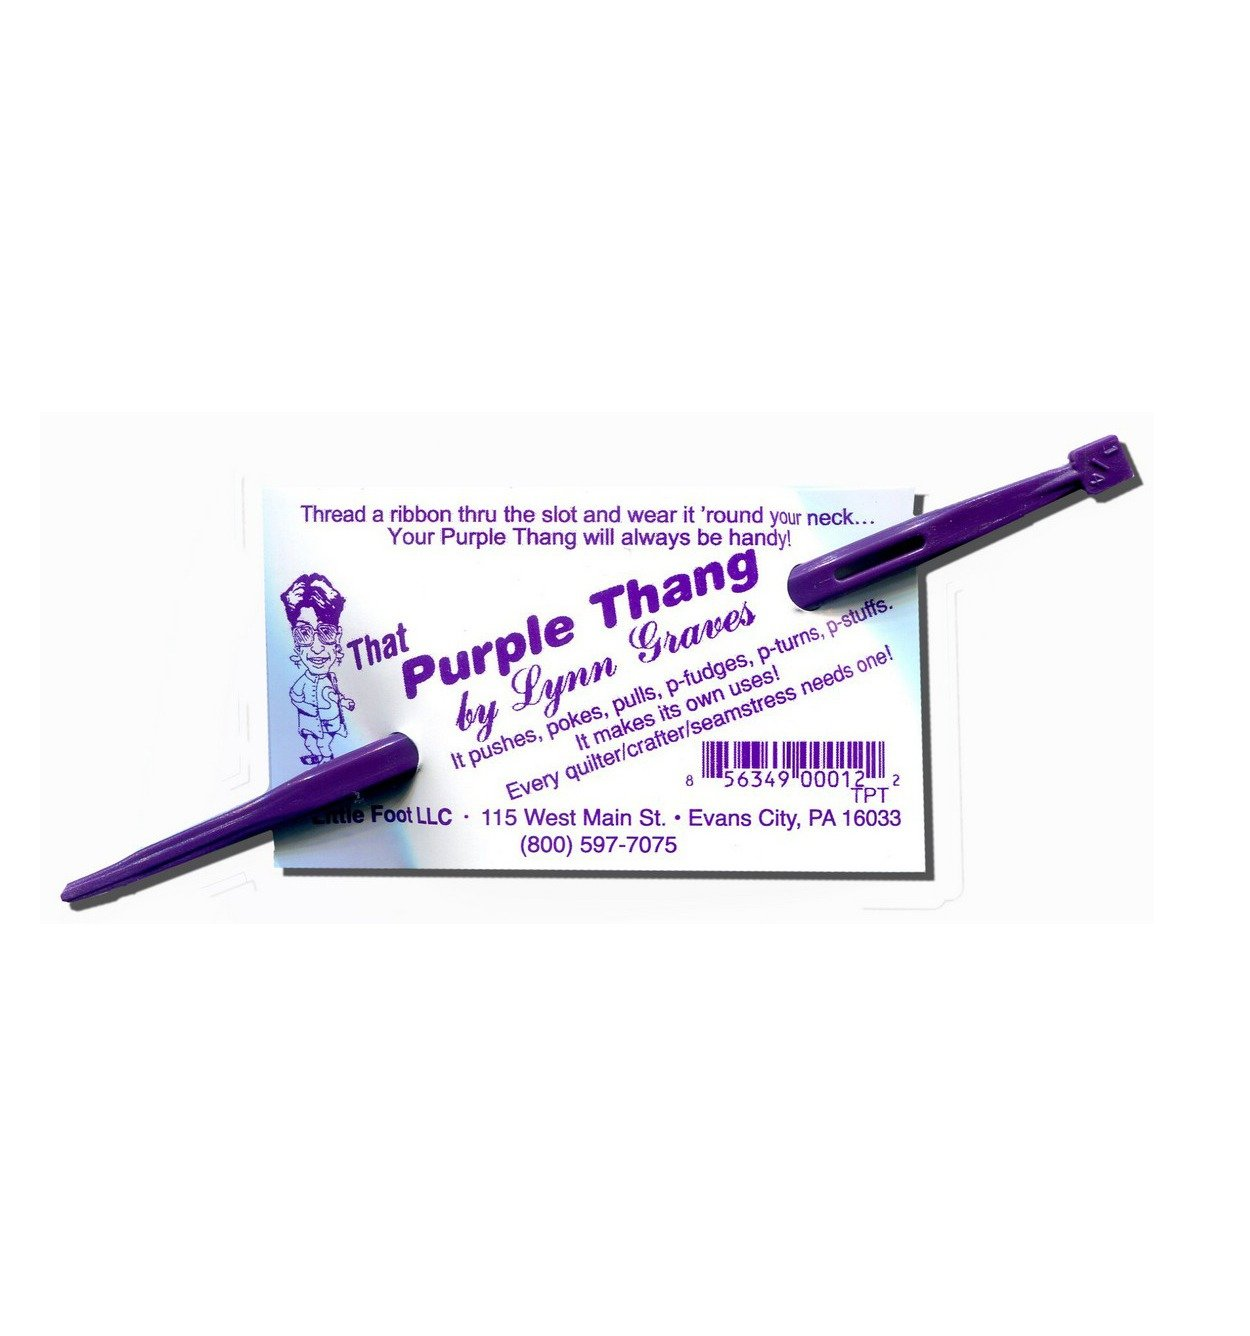 That Purple Thang by Lynn Graves Quilting Sewing Embroidery Notion Tool Quarter Inch Ribbon Australia Retailer Dealer Discount Postage Craft Accessories